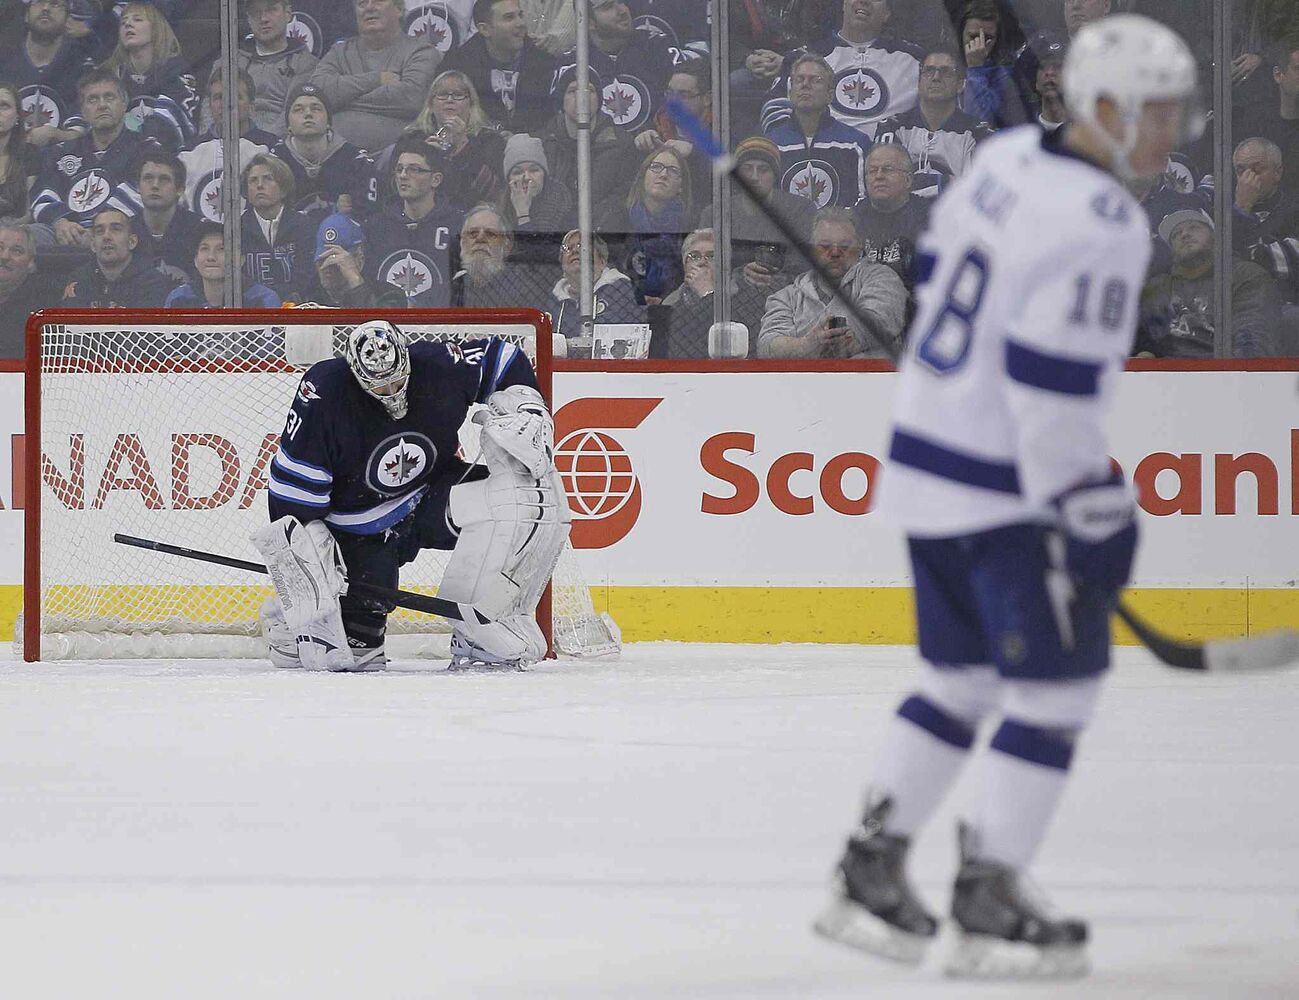 Winnipeg Jets' goaltender Ondrej Pavelec (31) hangs his head after being scored on by Tampa Bay Lightning's Ondrej Palat (18) during second period. (John Woods / Winnipeg Free Press)